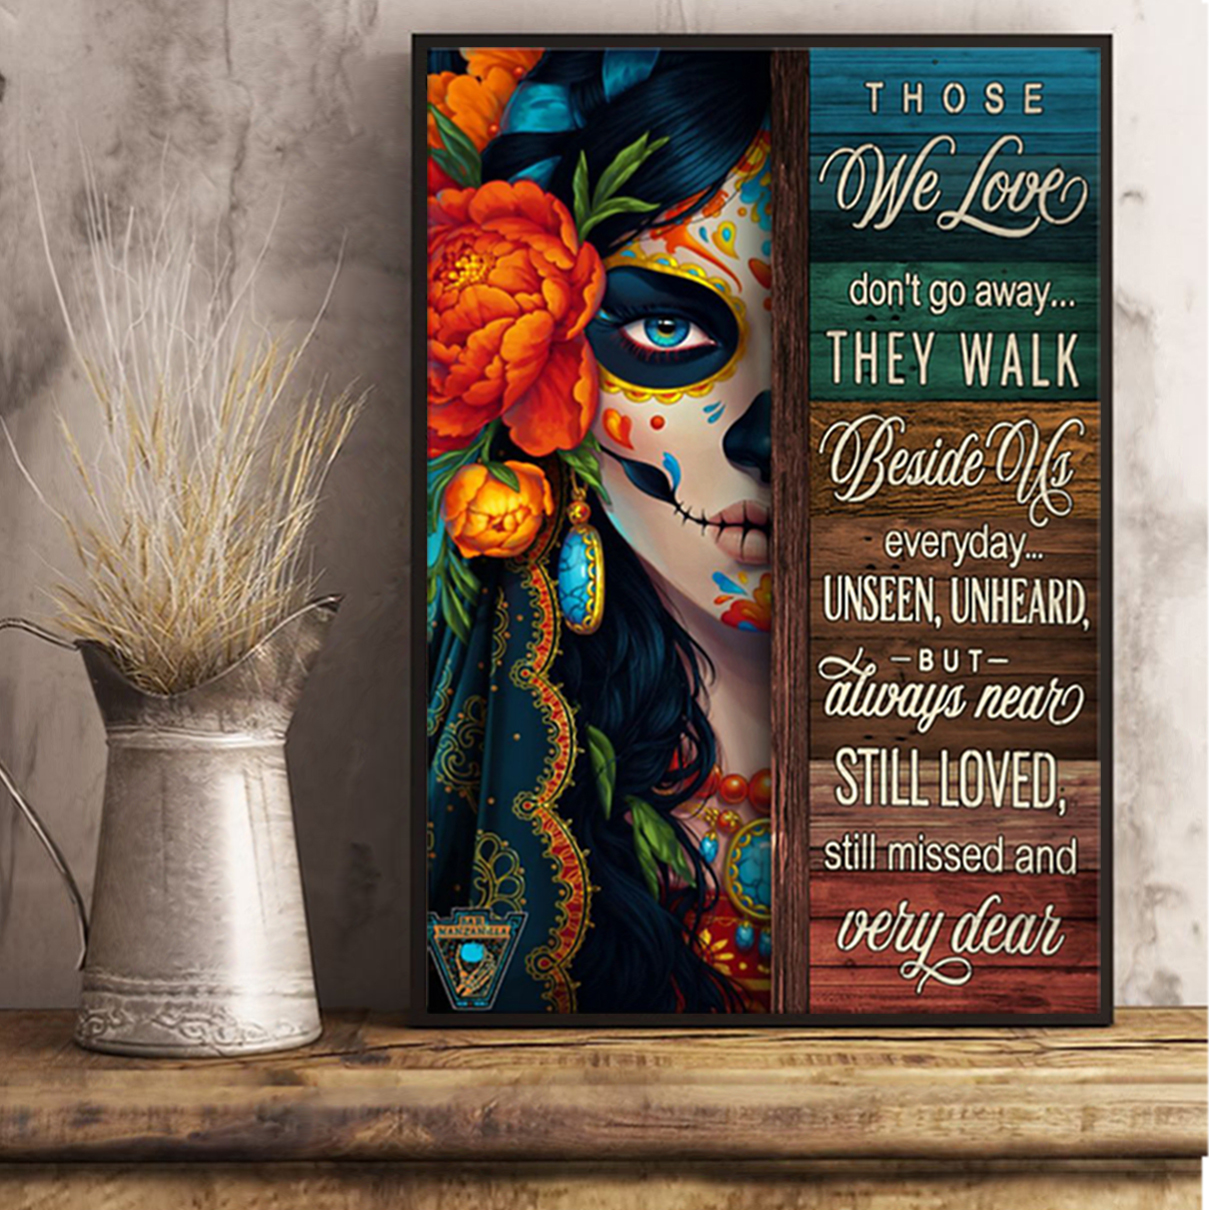 Day of the dead those we love don't go away poster A1